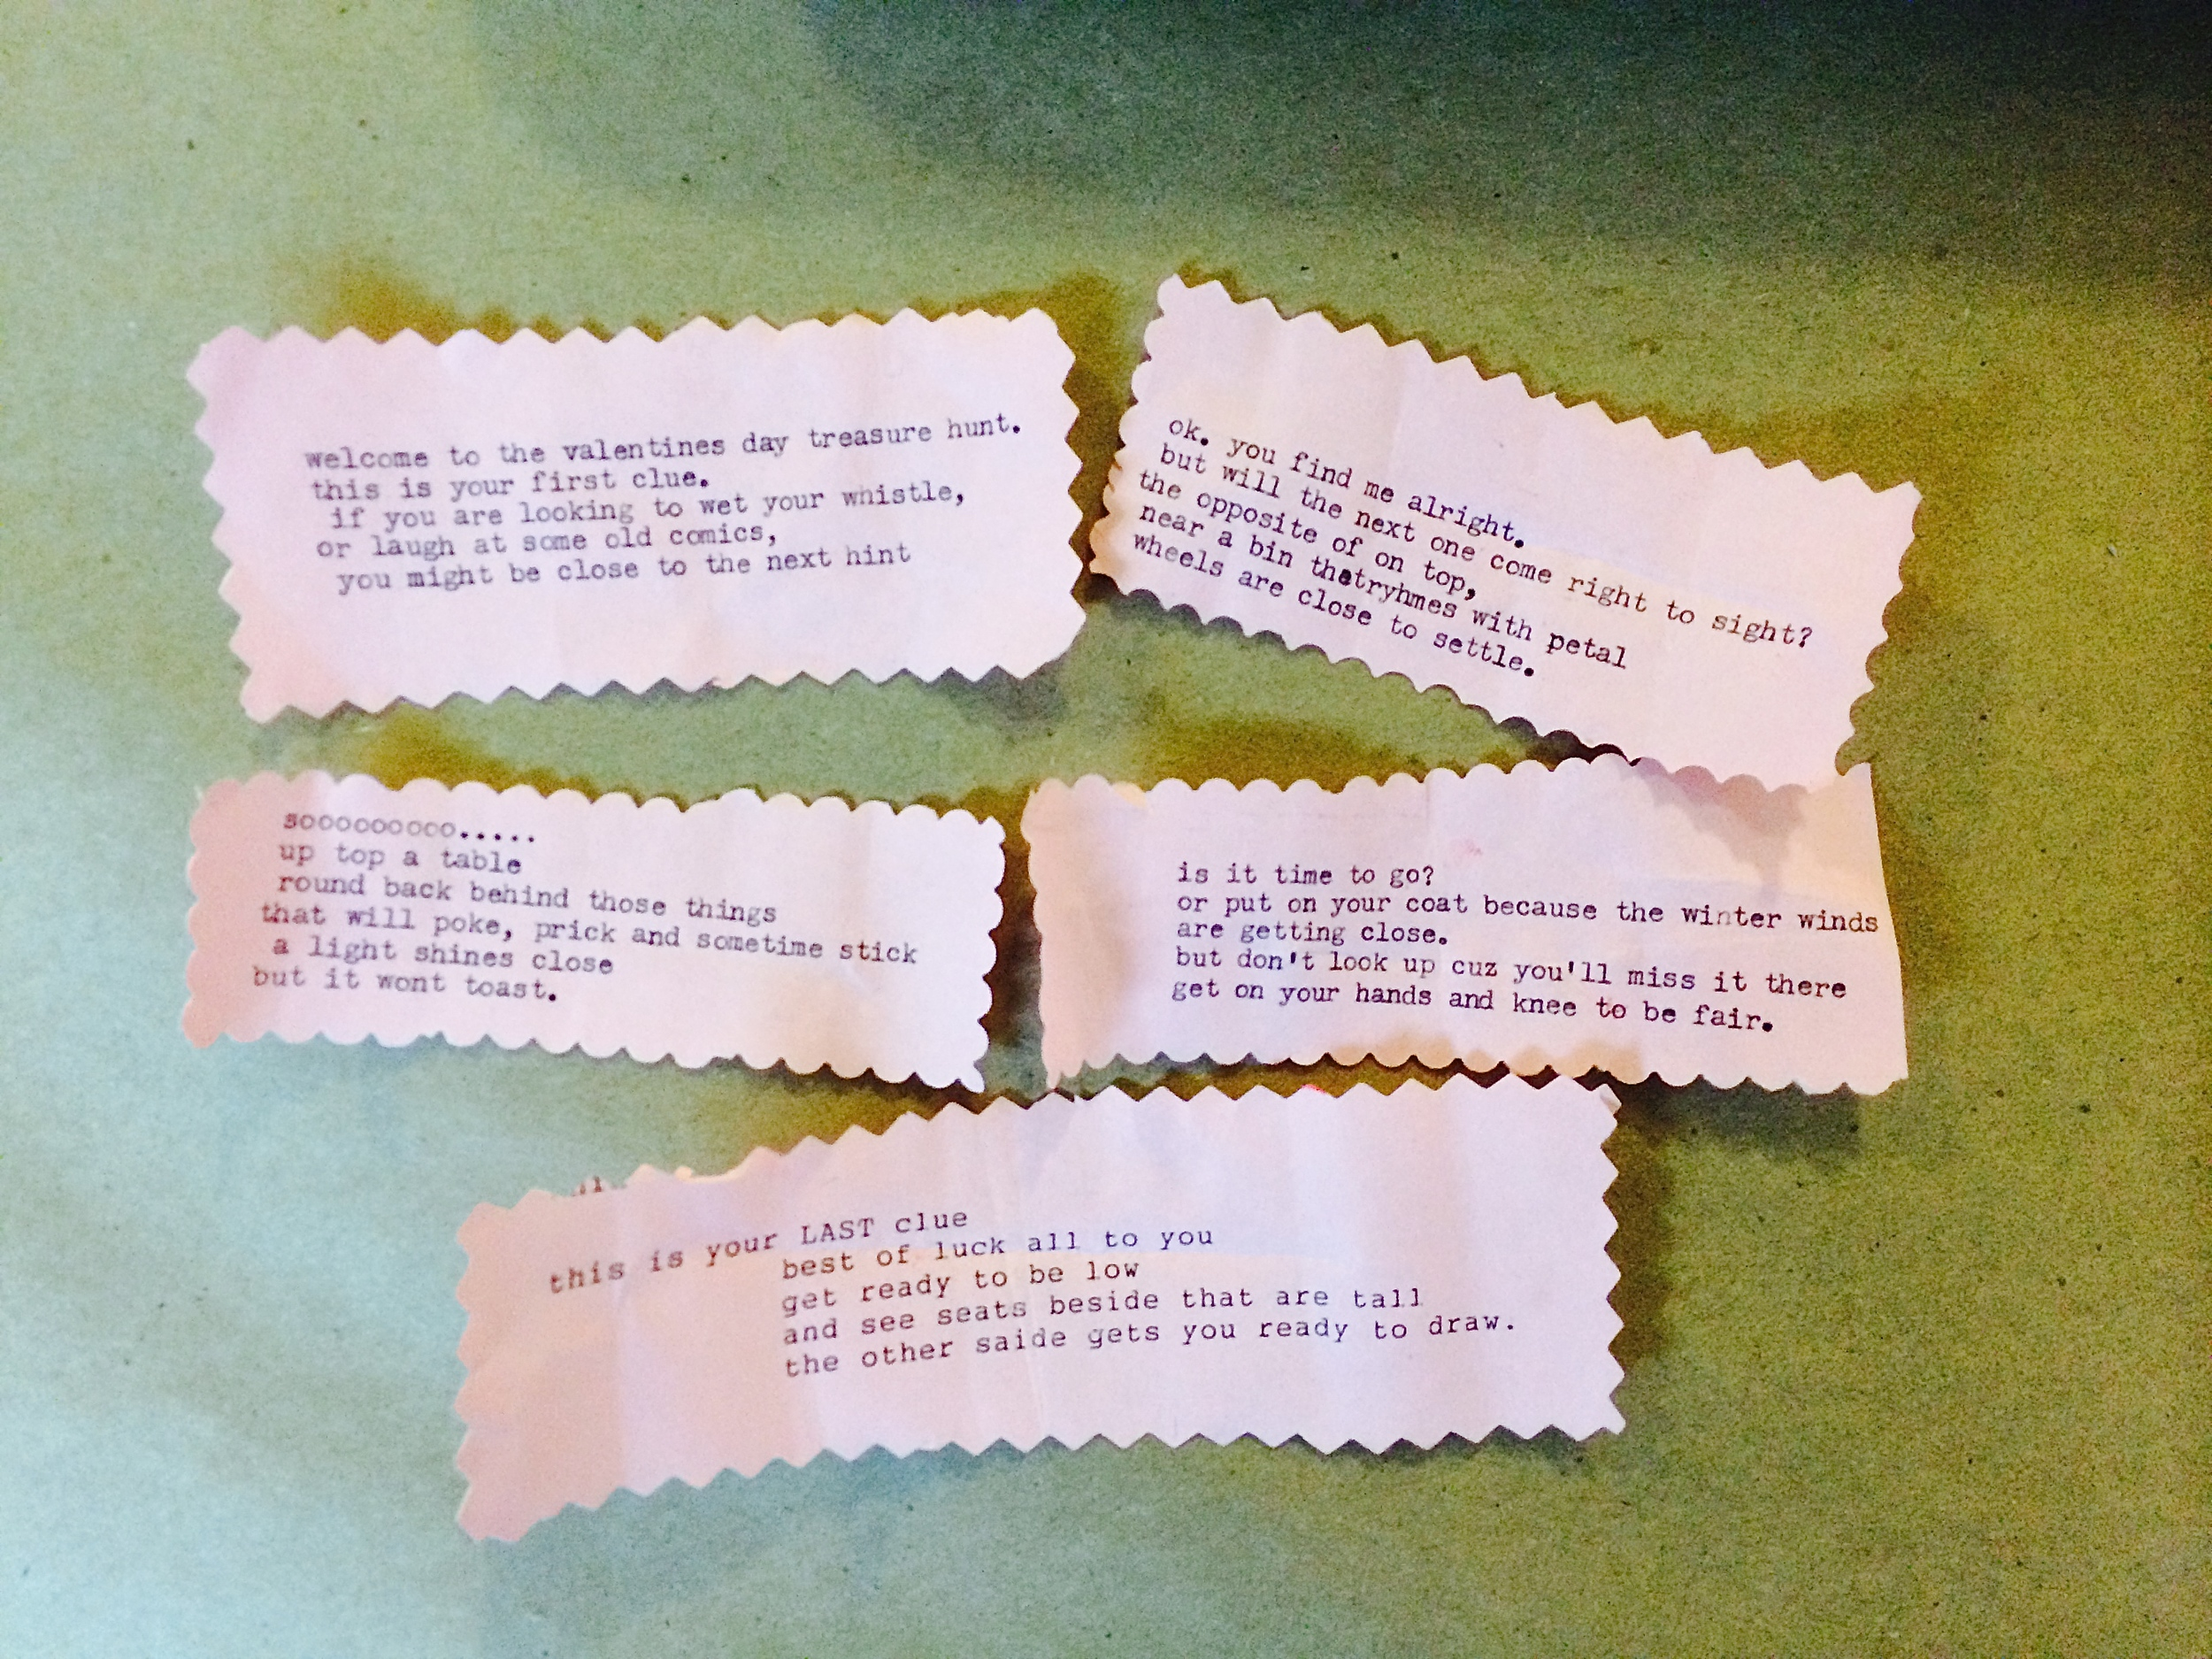 A valentine's day treasure hunt - one of the most innovative uses of the typewriter! Also, a collaboration between adults and kids!